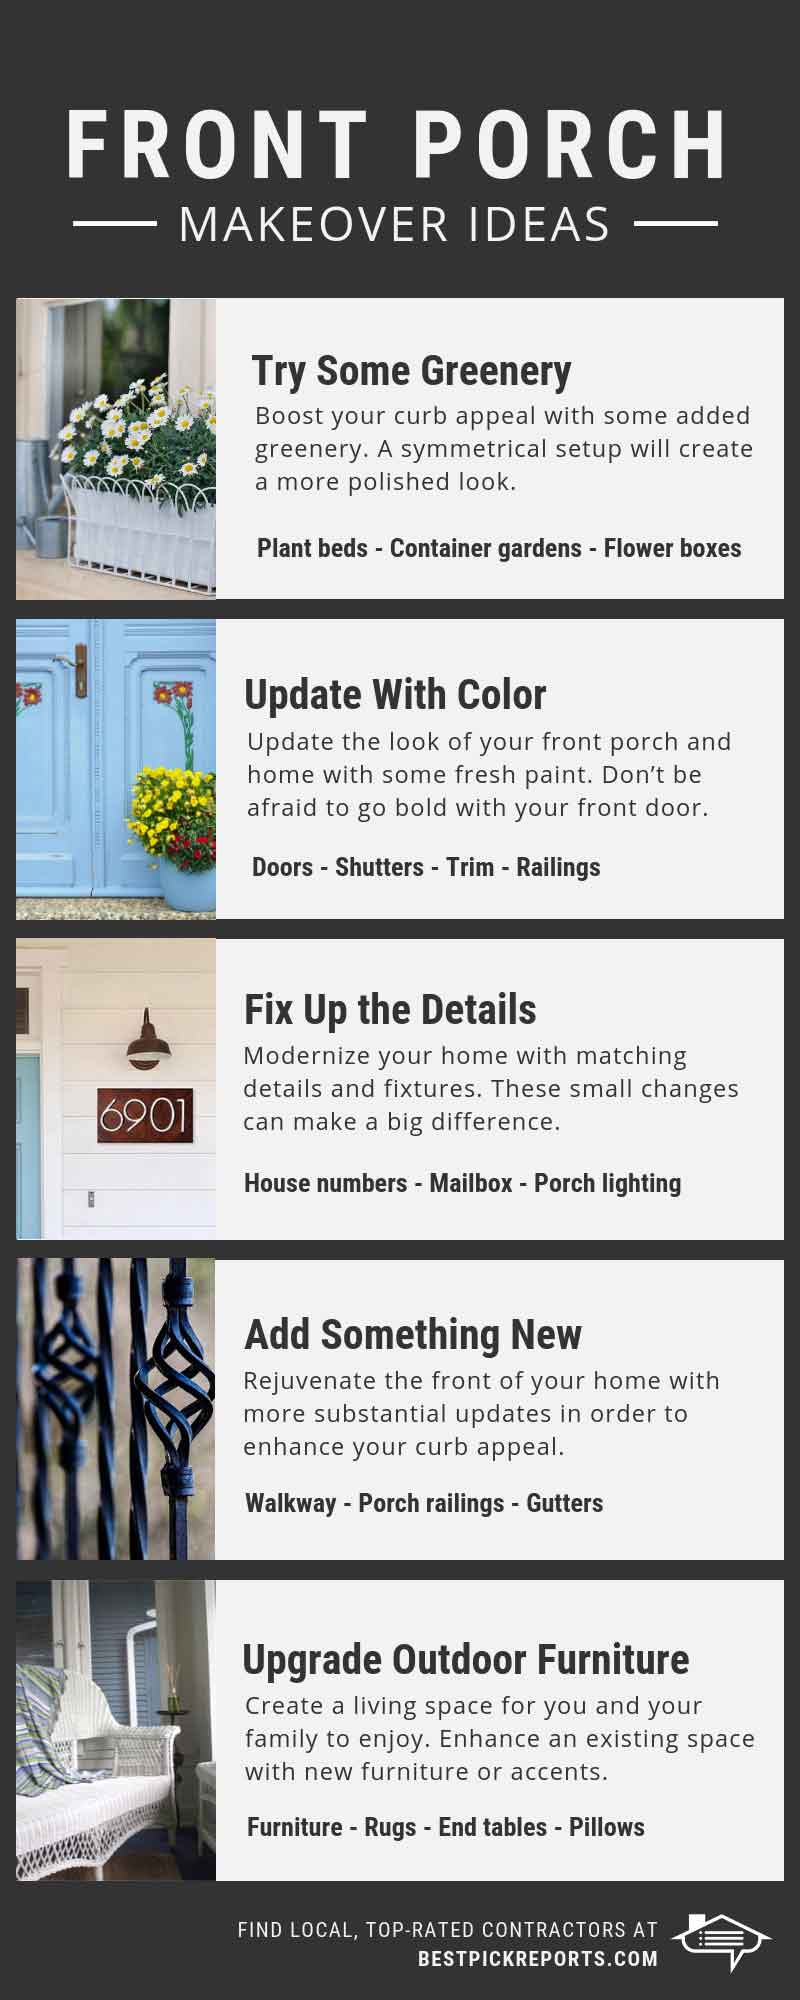 front porch makeover ideas infographic